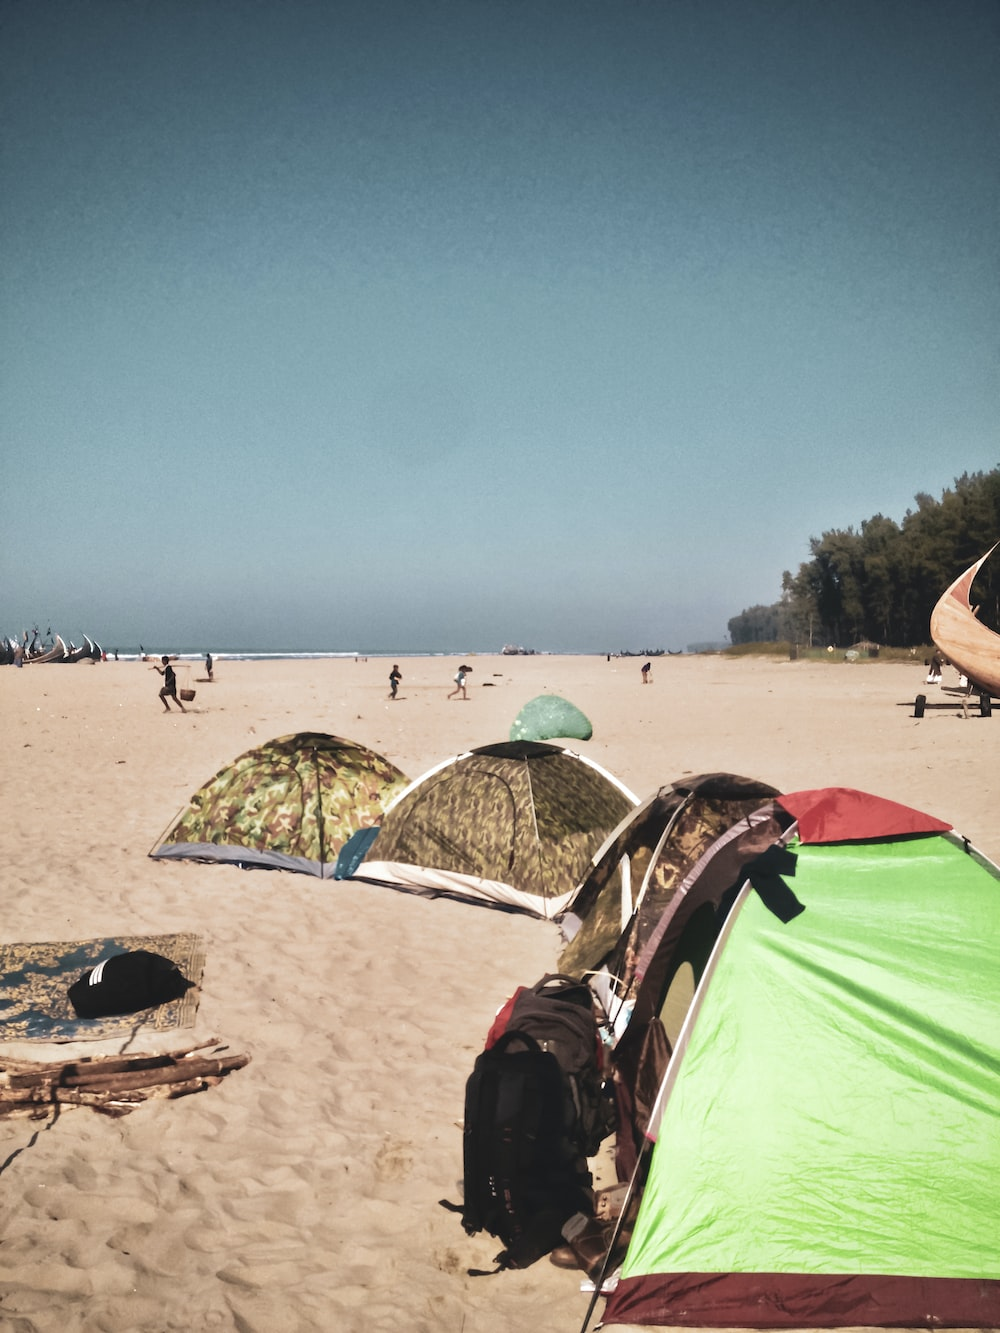 green tent on beach during daytime